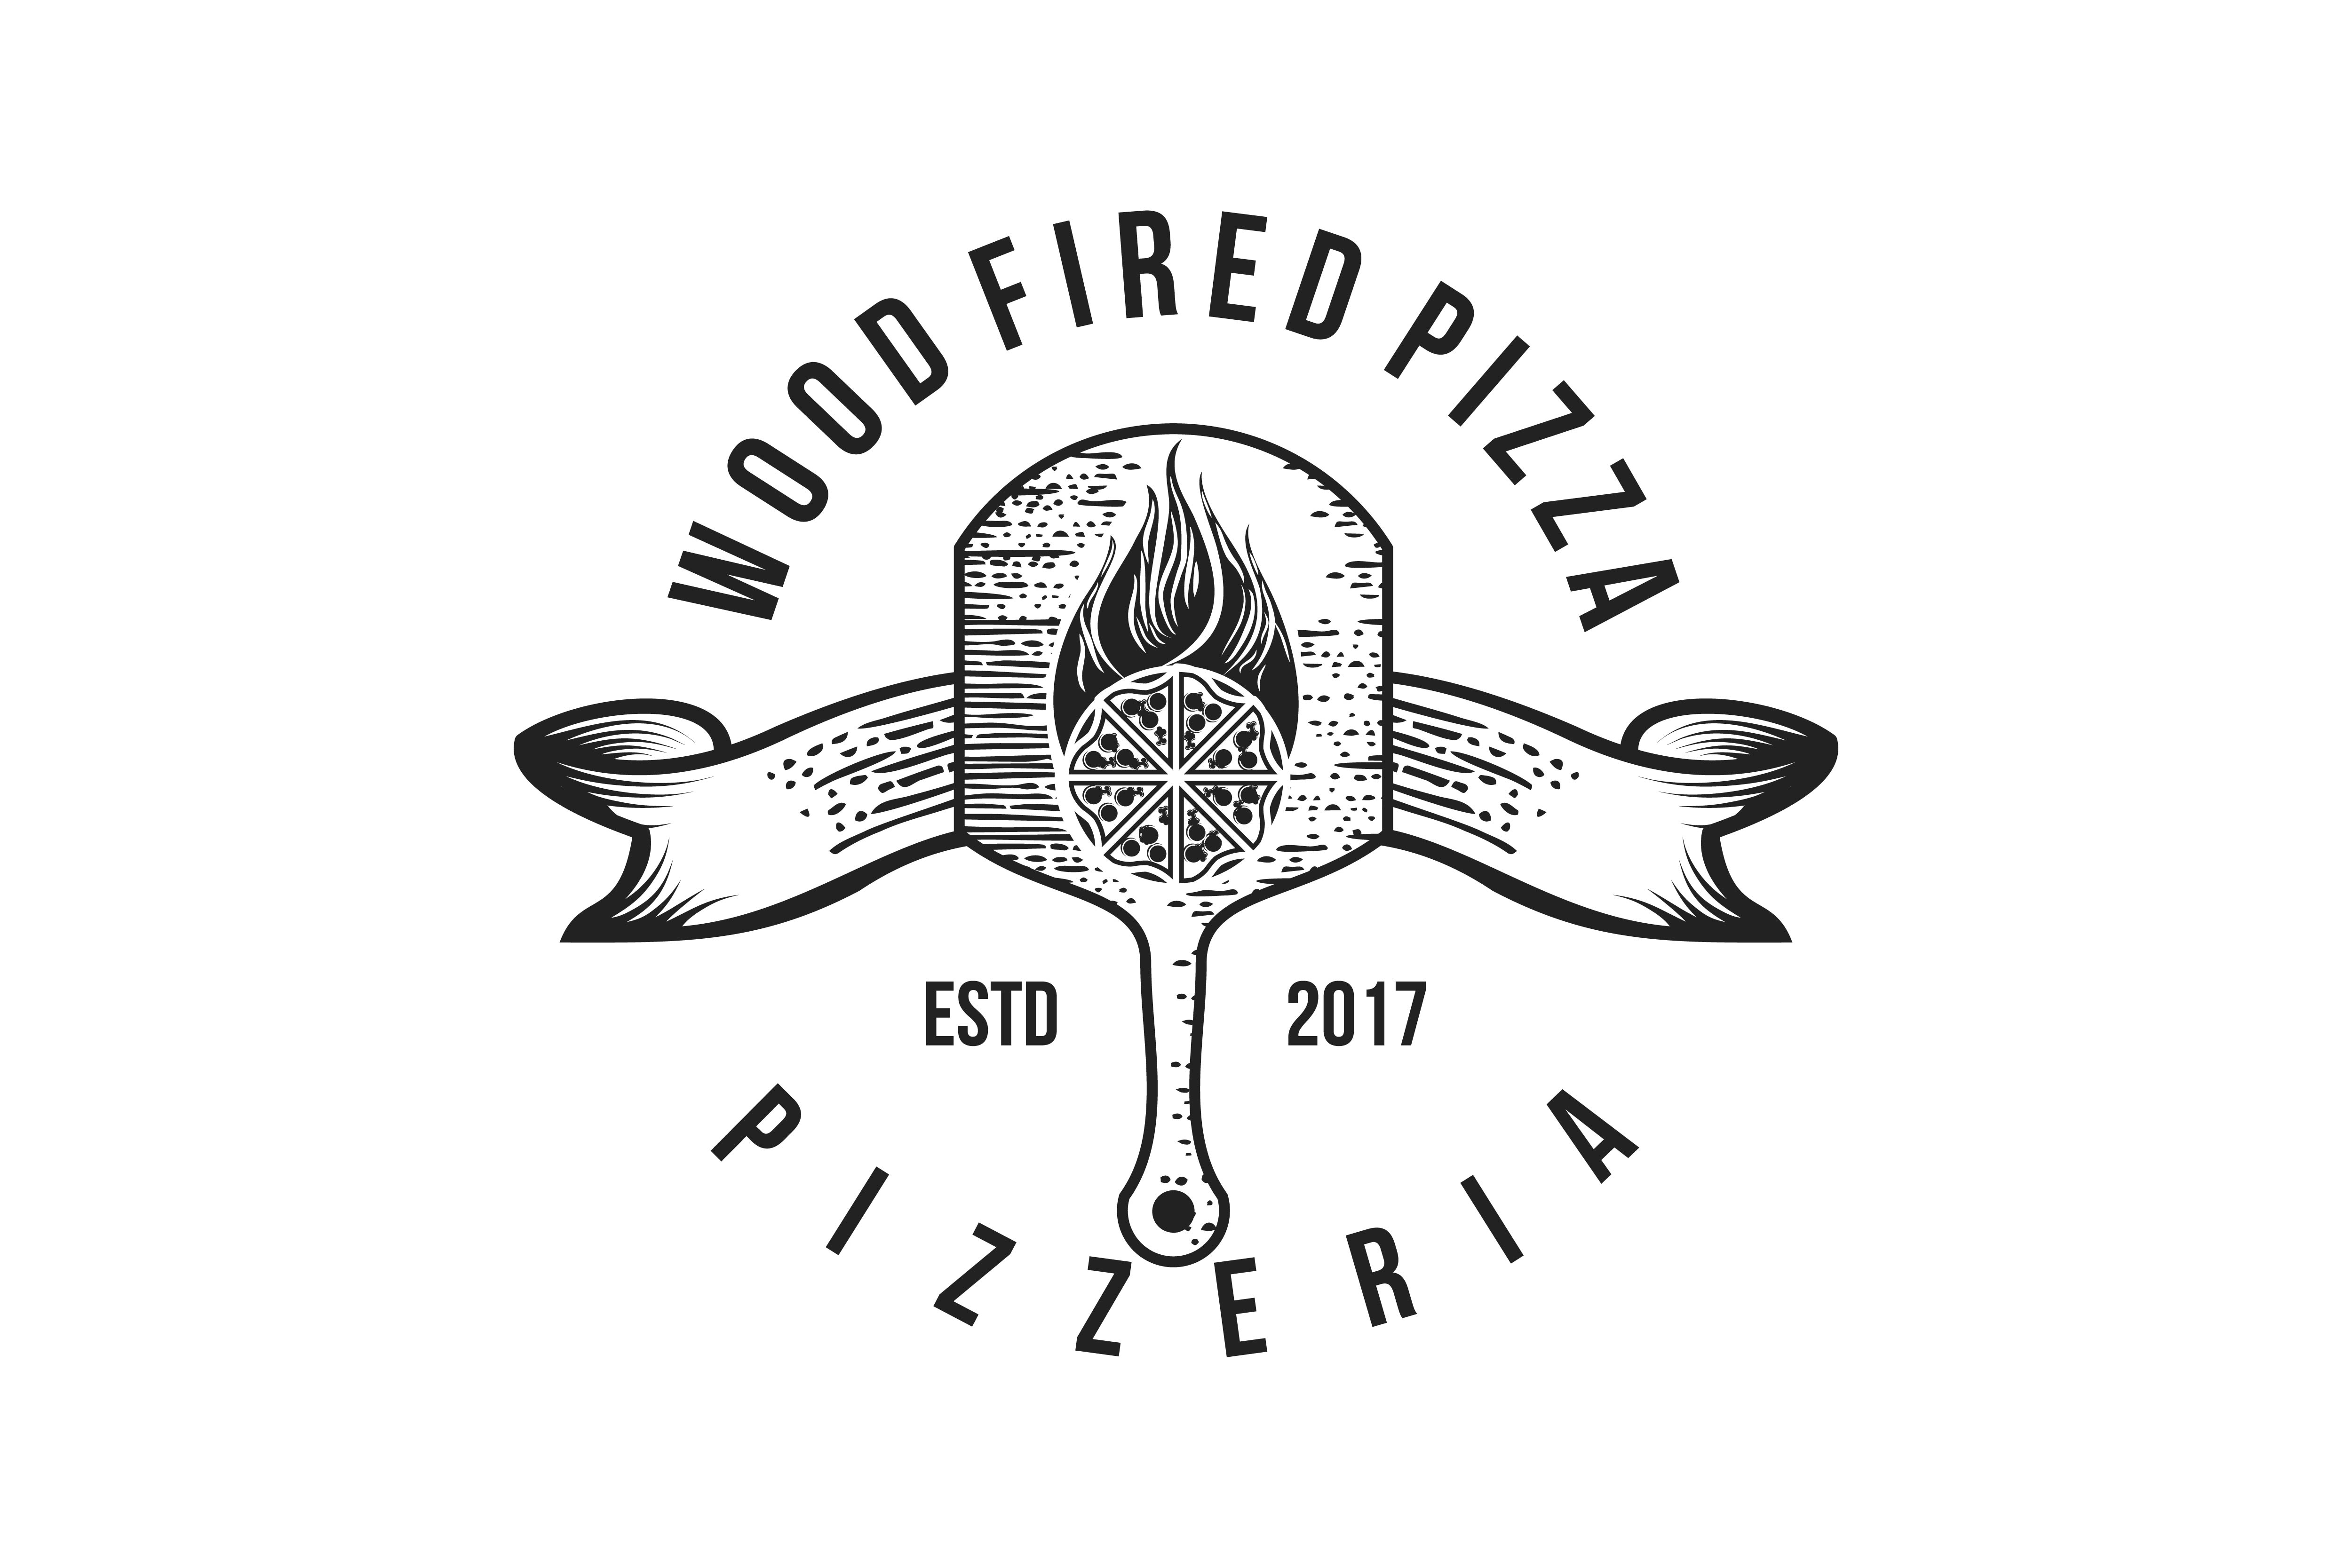 Download Free Pizza Wood Plate Vintage Badges Logo Designs Graphic By for Cricut Explore, Silhouette and other cutting machines.